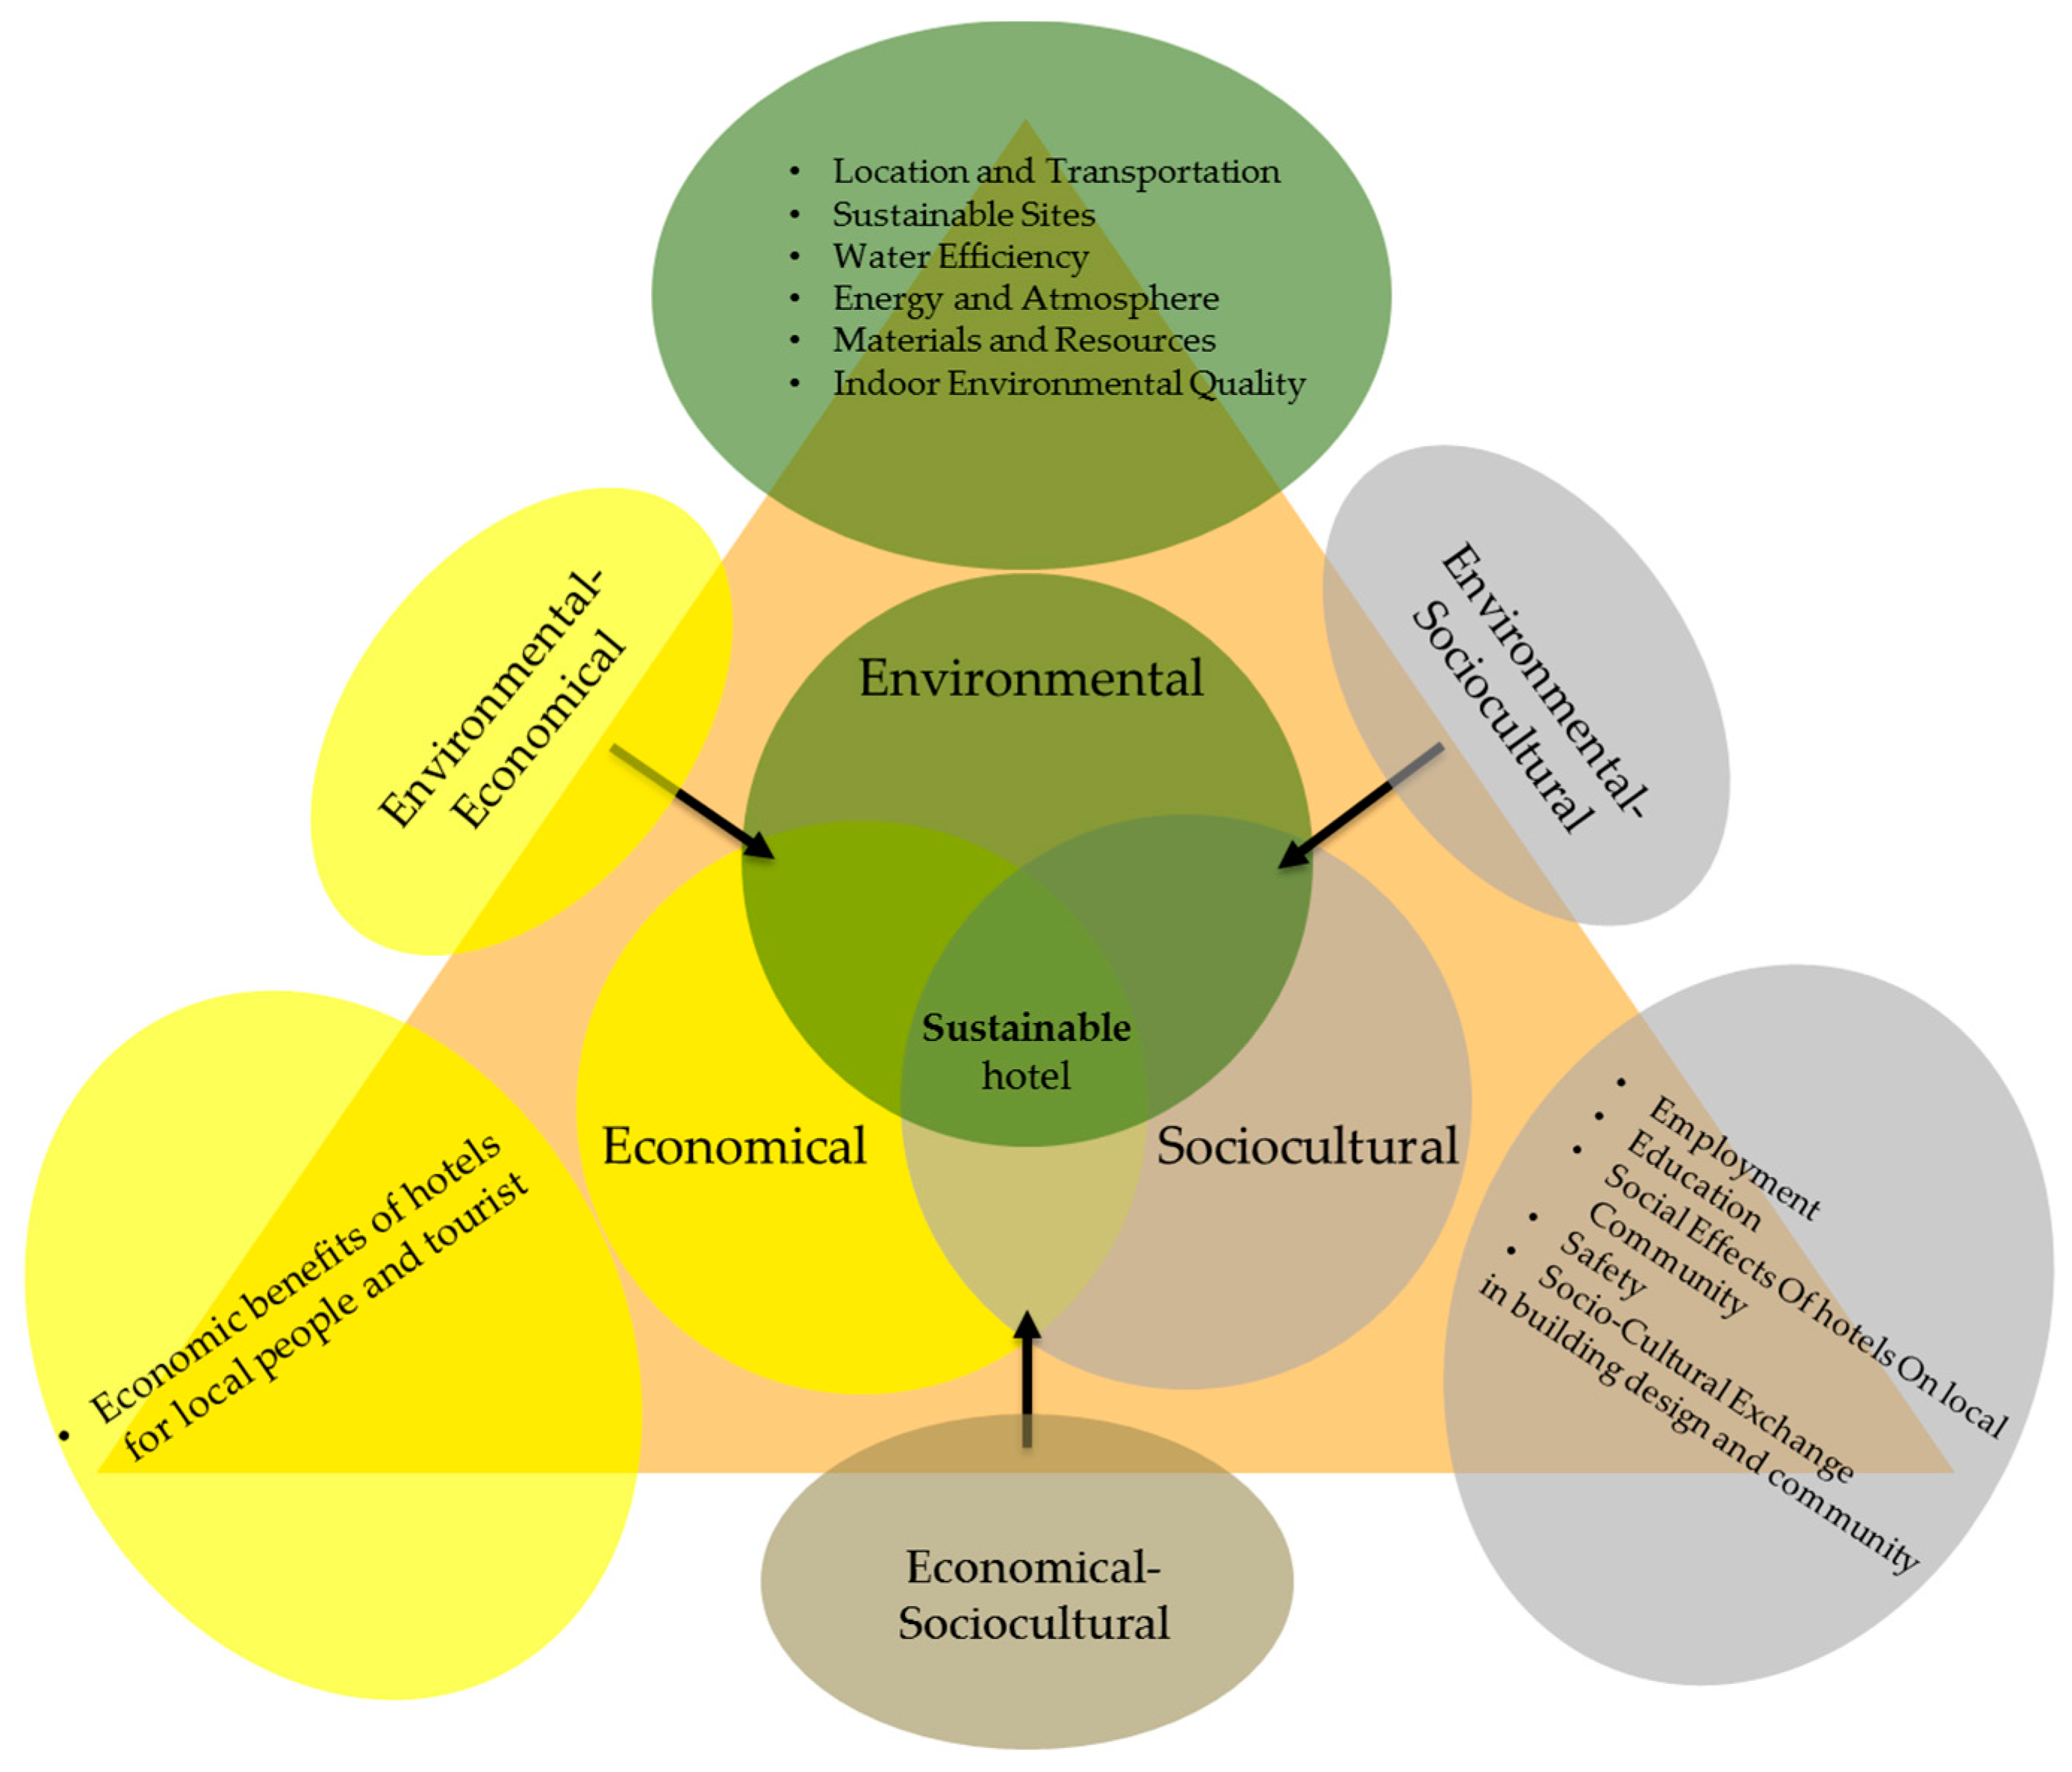 barriers to sustainable tourism development The focus of this paper is on identifying the barriers to successful implementation of sustainable tourism policy the research used exploratory and descriptive approaches to identify barriers from the literature as well as field research to.